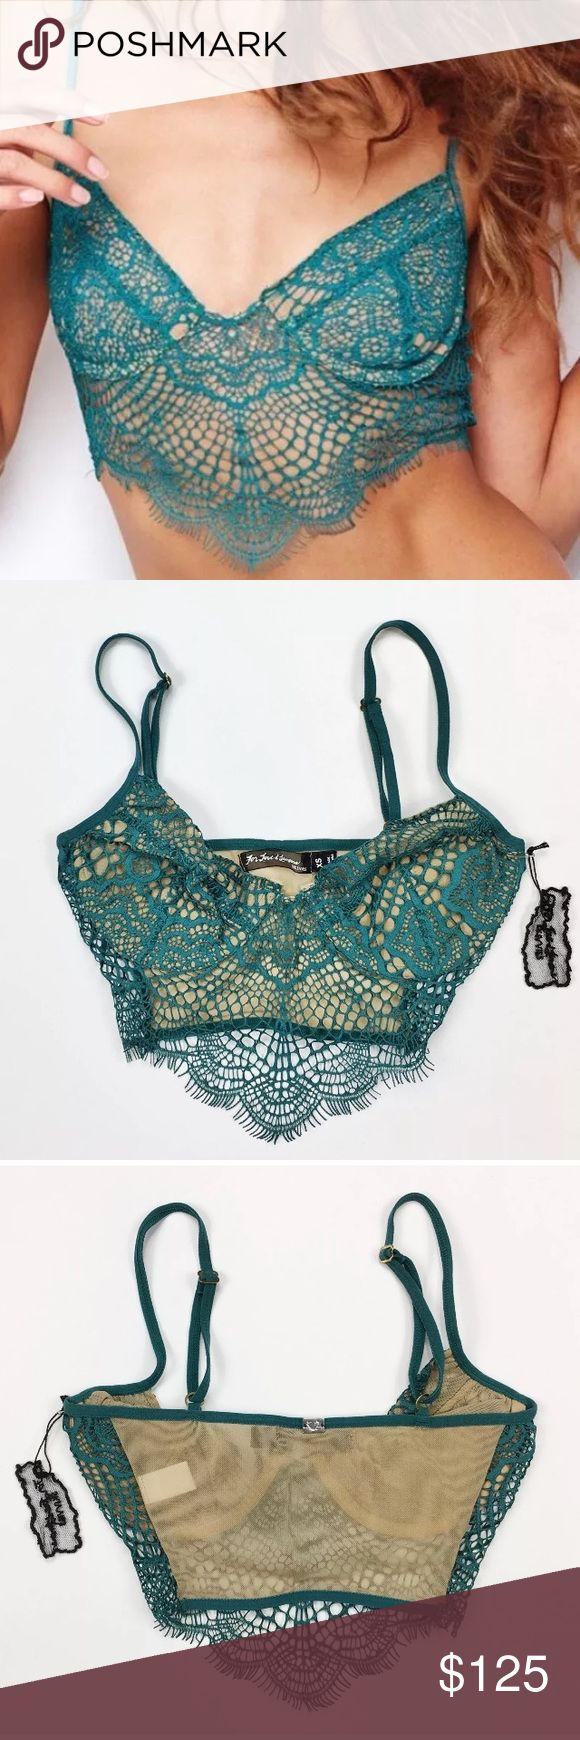 "NWT XS For Love and Lemons Jade Bat Your Lashes Brand New With Tags For Love and Lemons ""Bat Your Lashes"" Bra Size: X-Small Please note this bra runs smaller than true to size in the band. Will fit a size 30 band and an A cup. Adjustable shoulder straps. Mesh stretchy back to conform to your body shape. This is a pull on bra.  